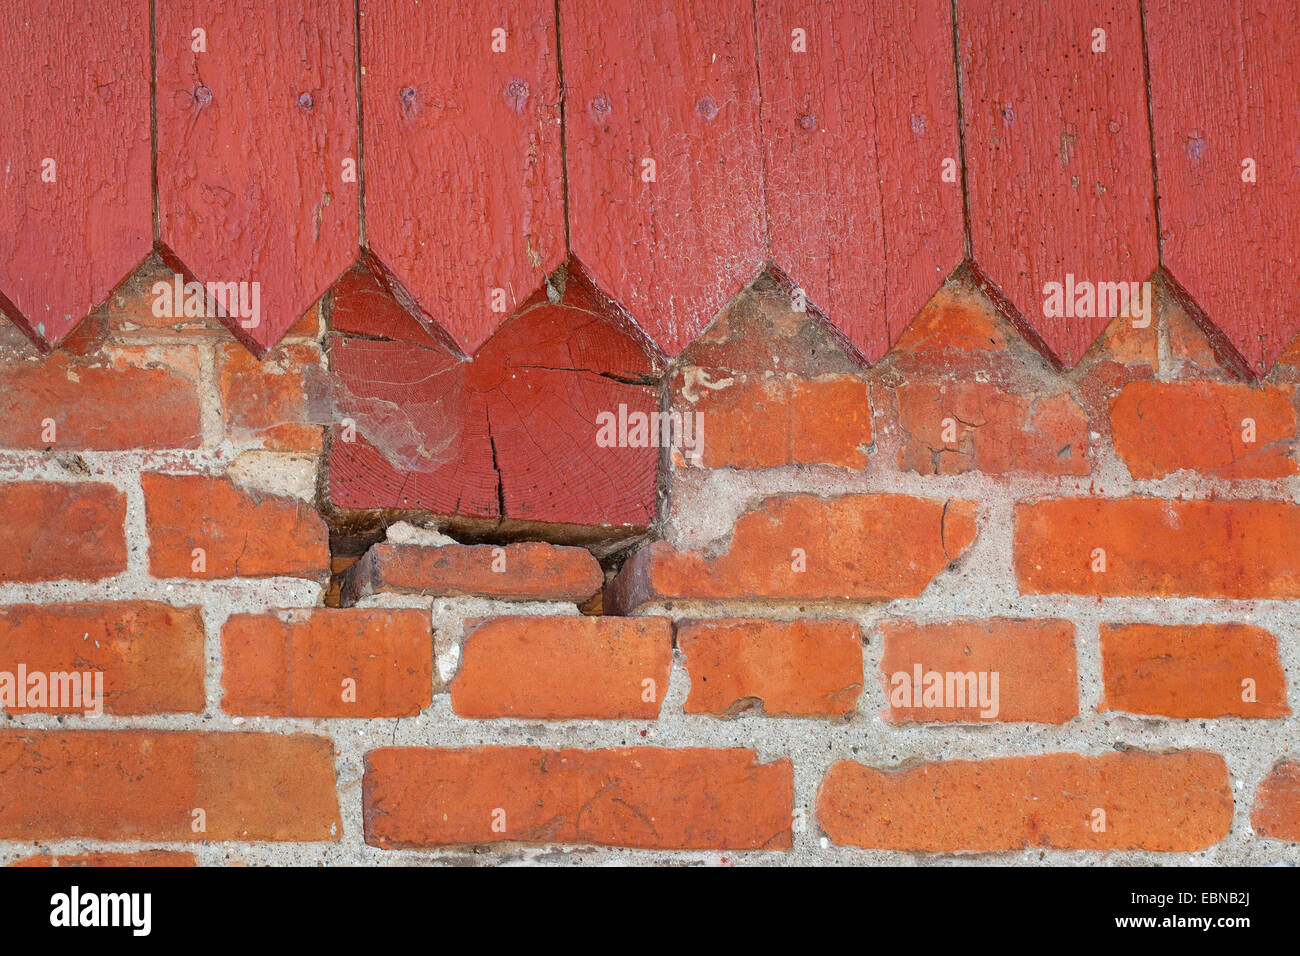 columns and niches in the masonry as a hiding place for animals, Germany - Stock Image